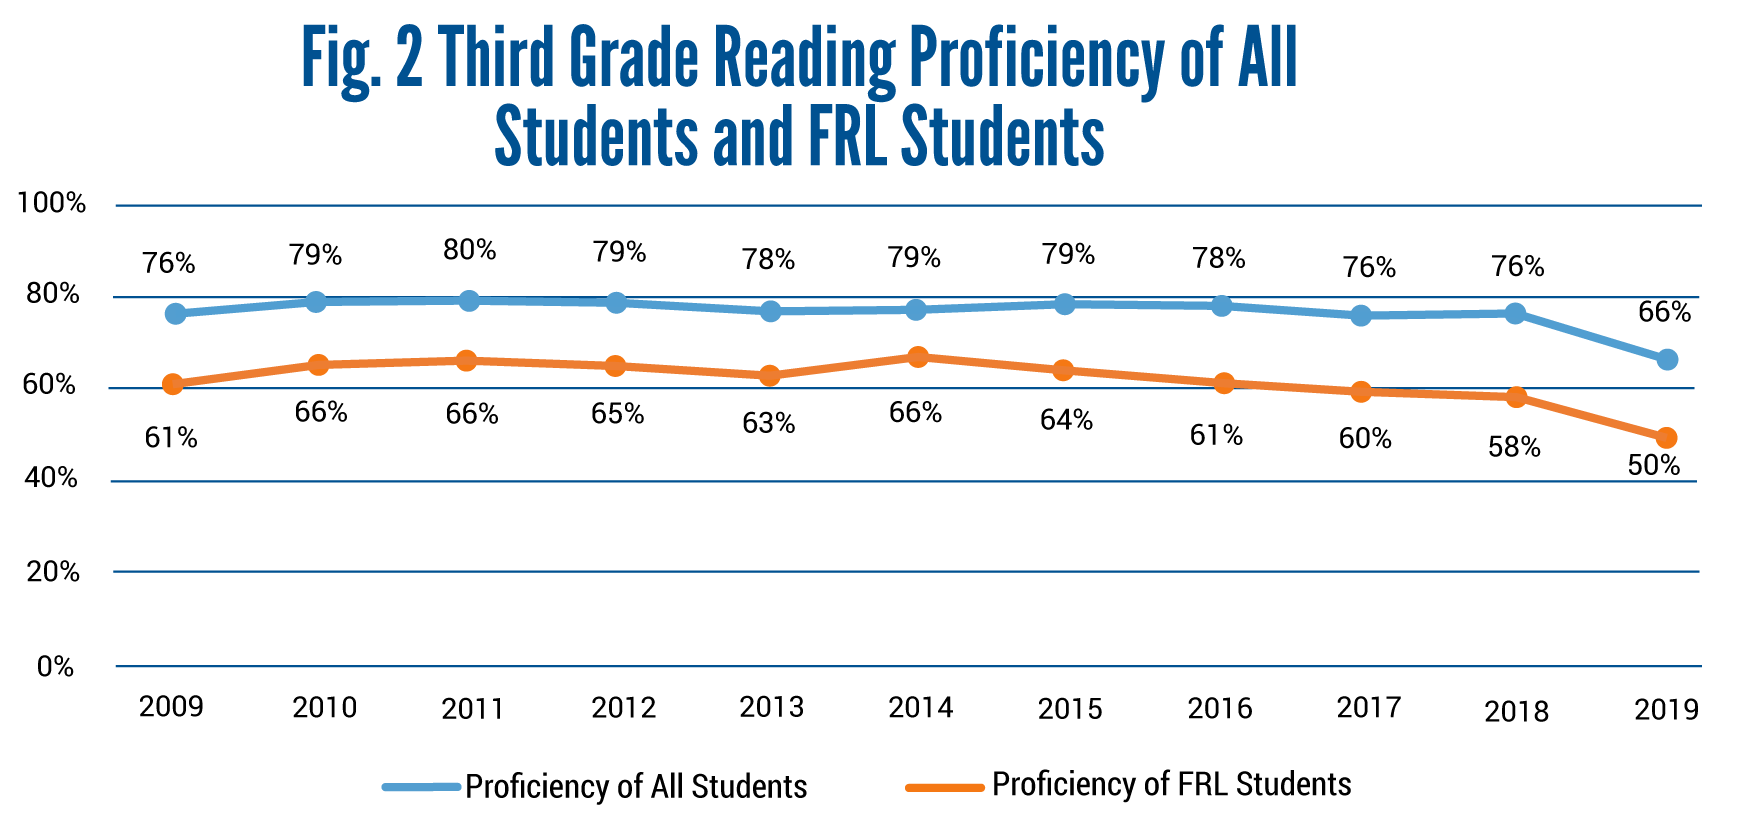 Data Dialogue Graphs-Third Grade Reading Proficiency of All Students and FRL Students-05